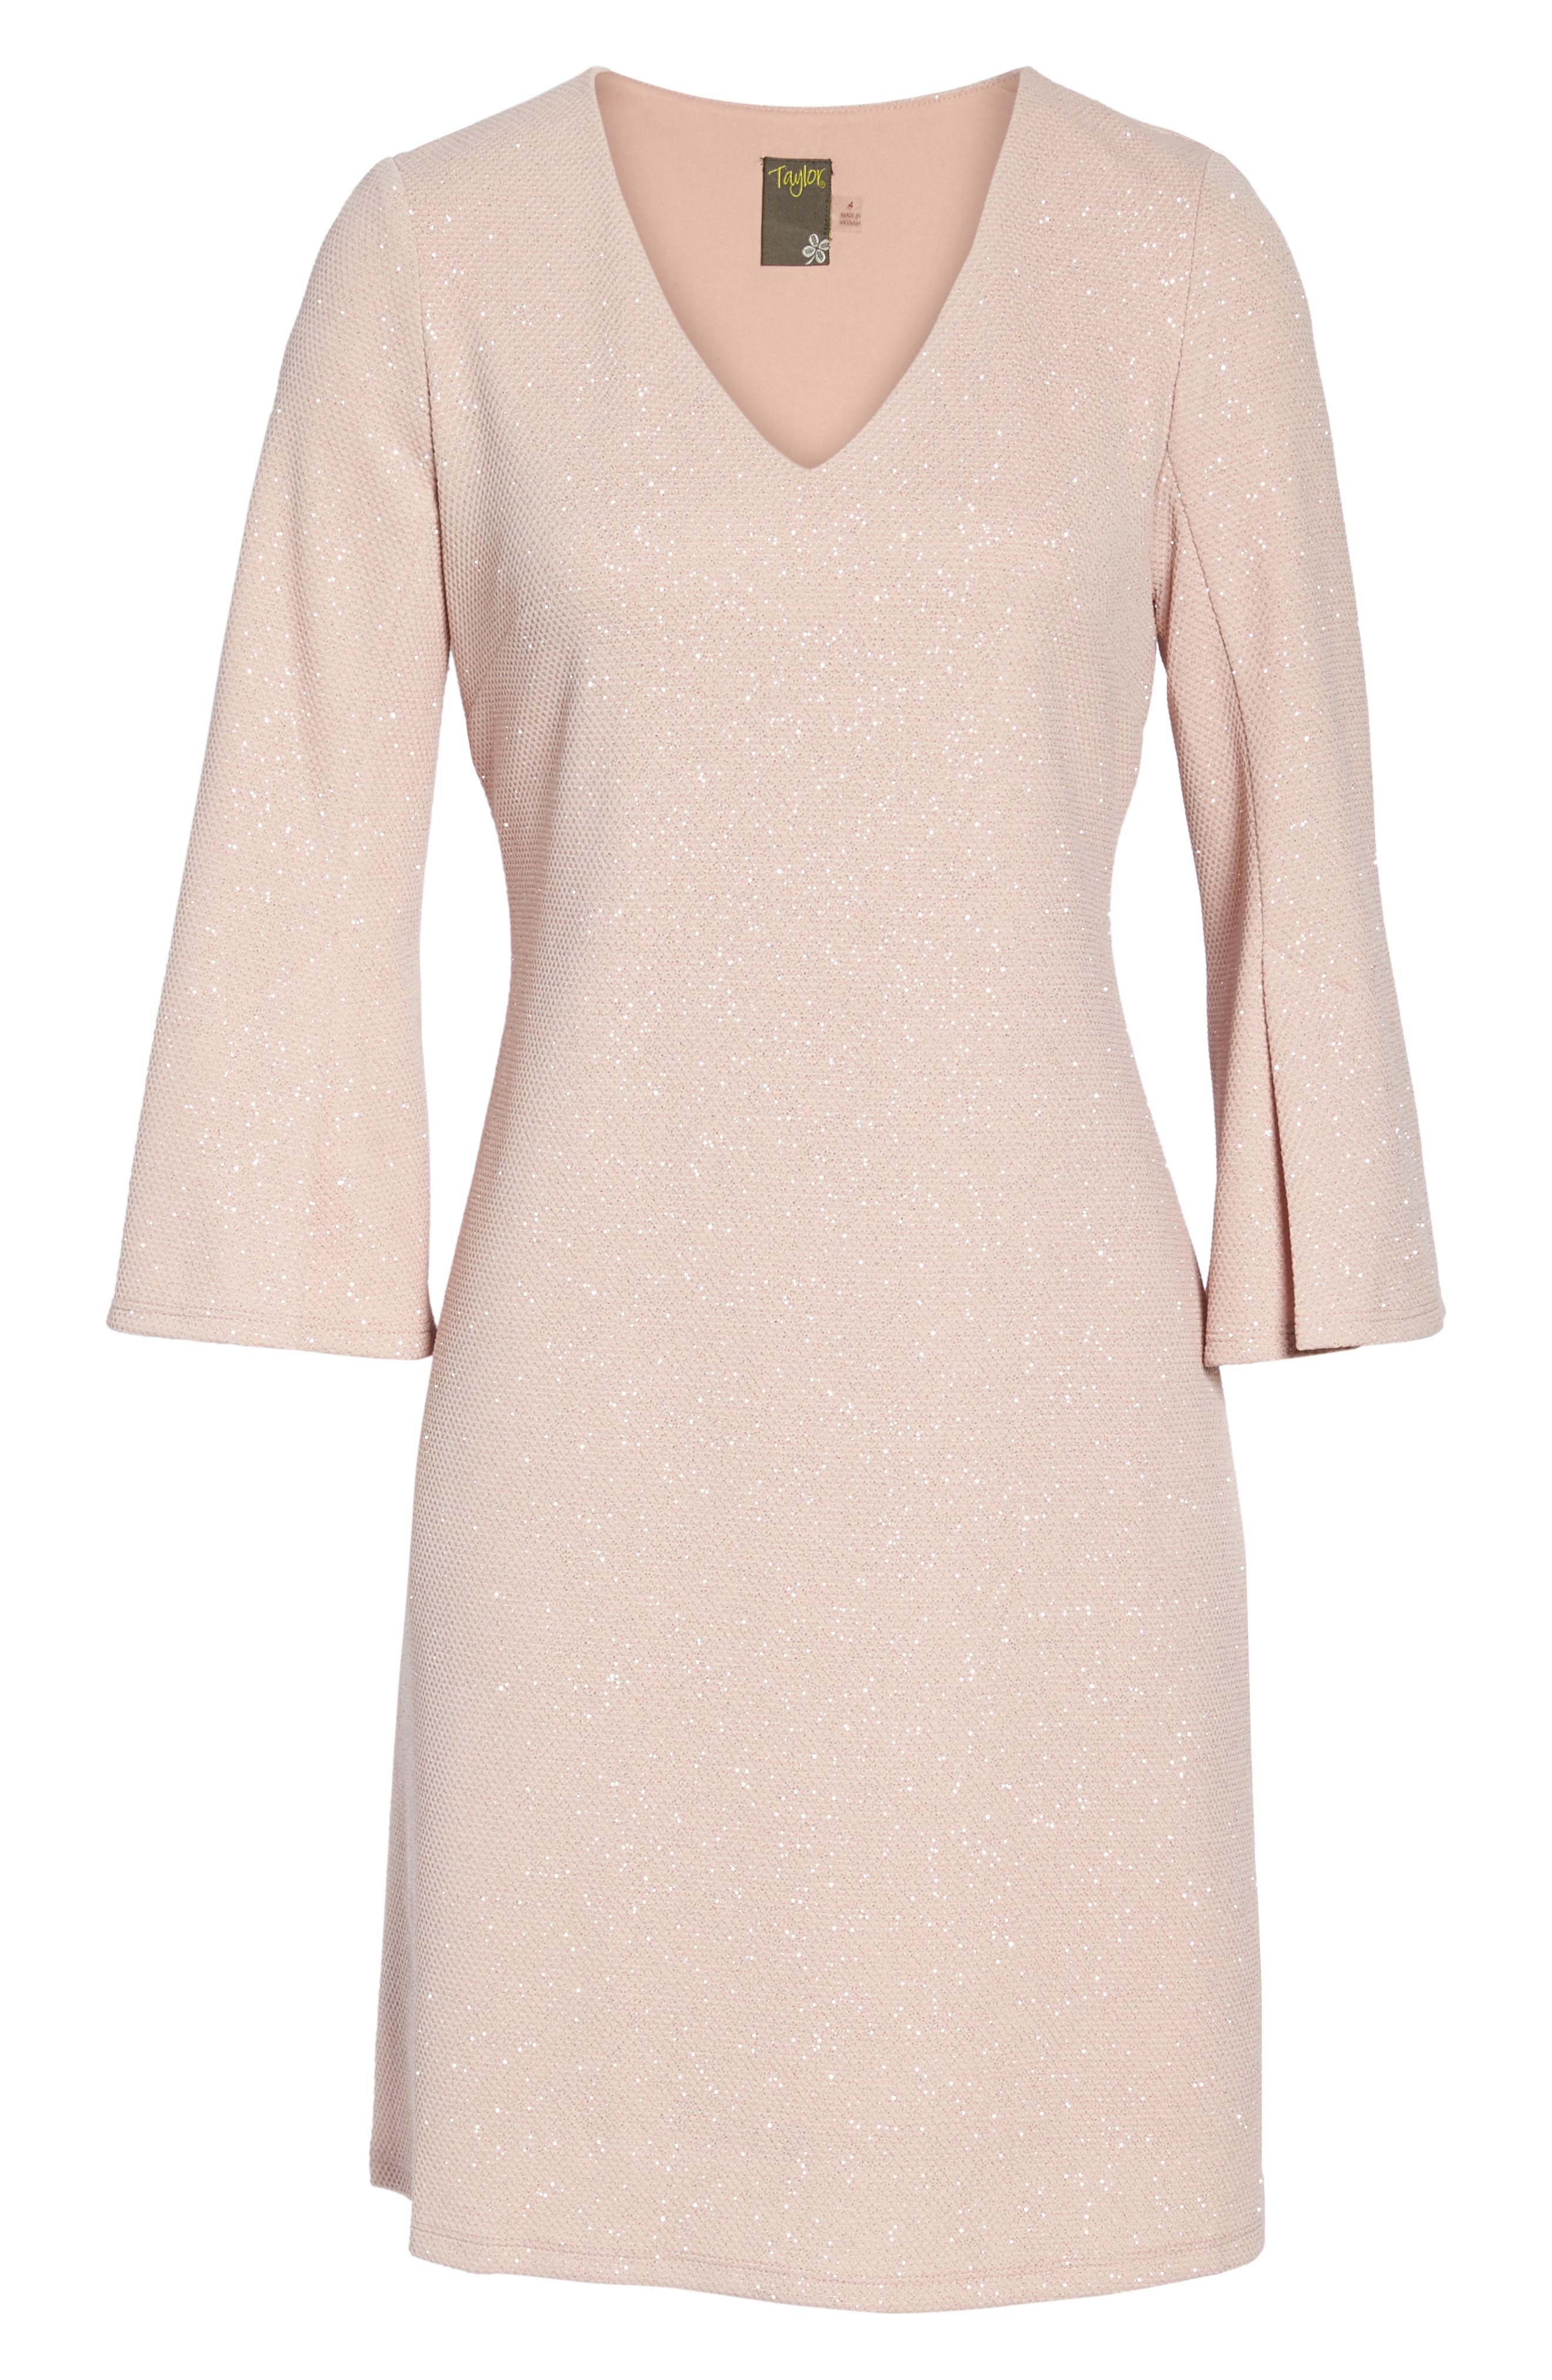 Bell Sleeve Shift Dress,                             Alternate thumbnail 6, color,